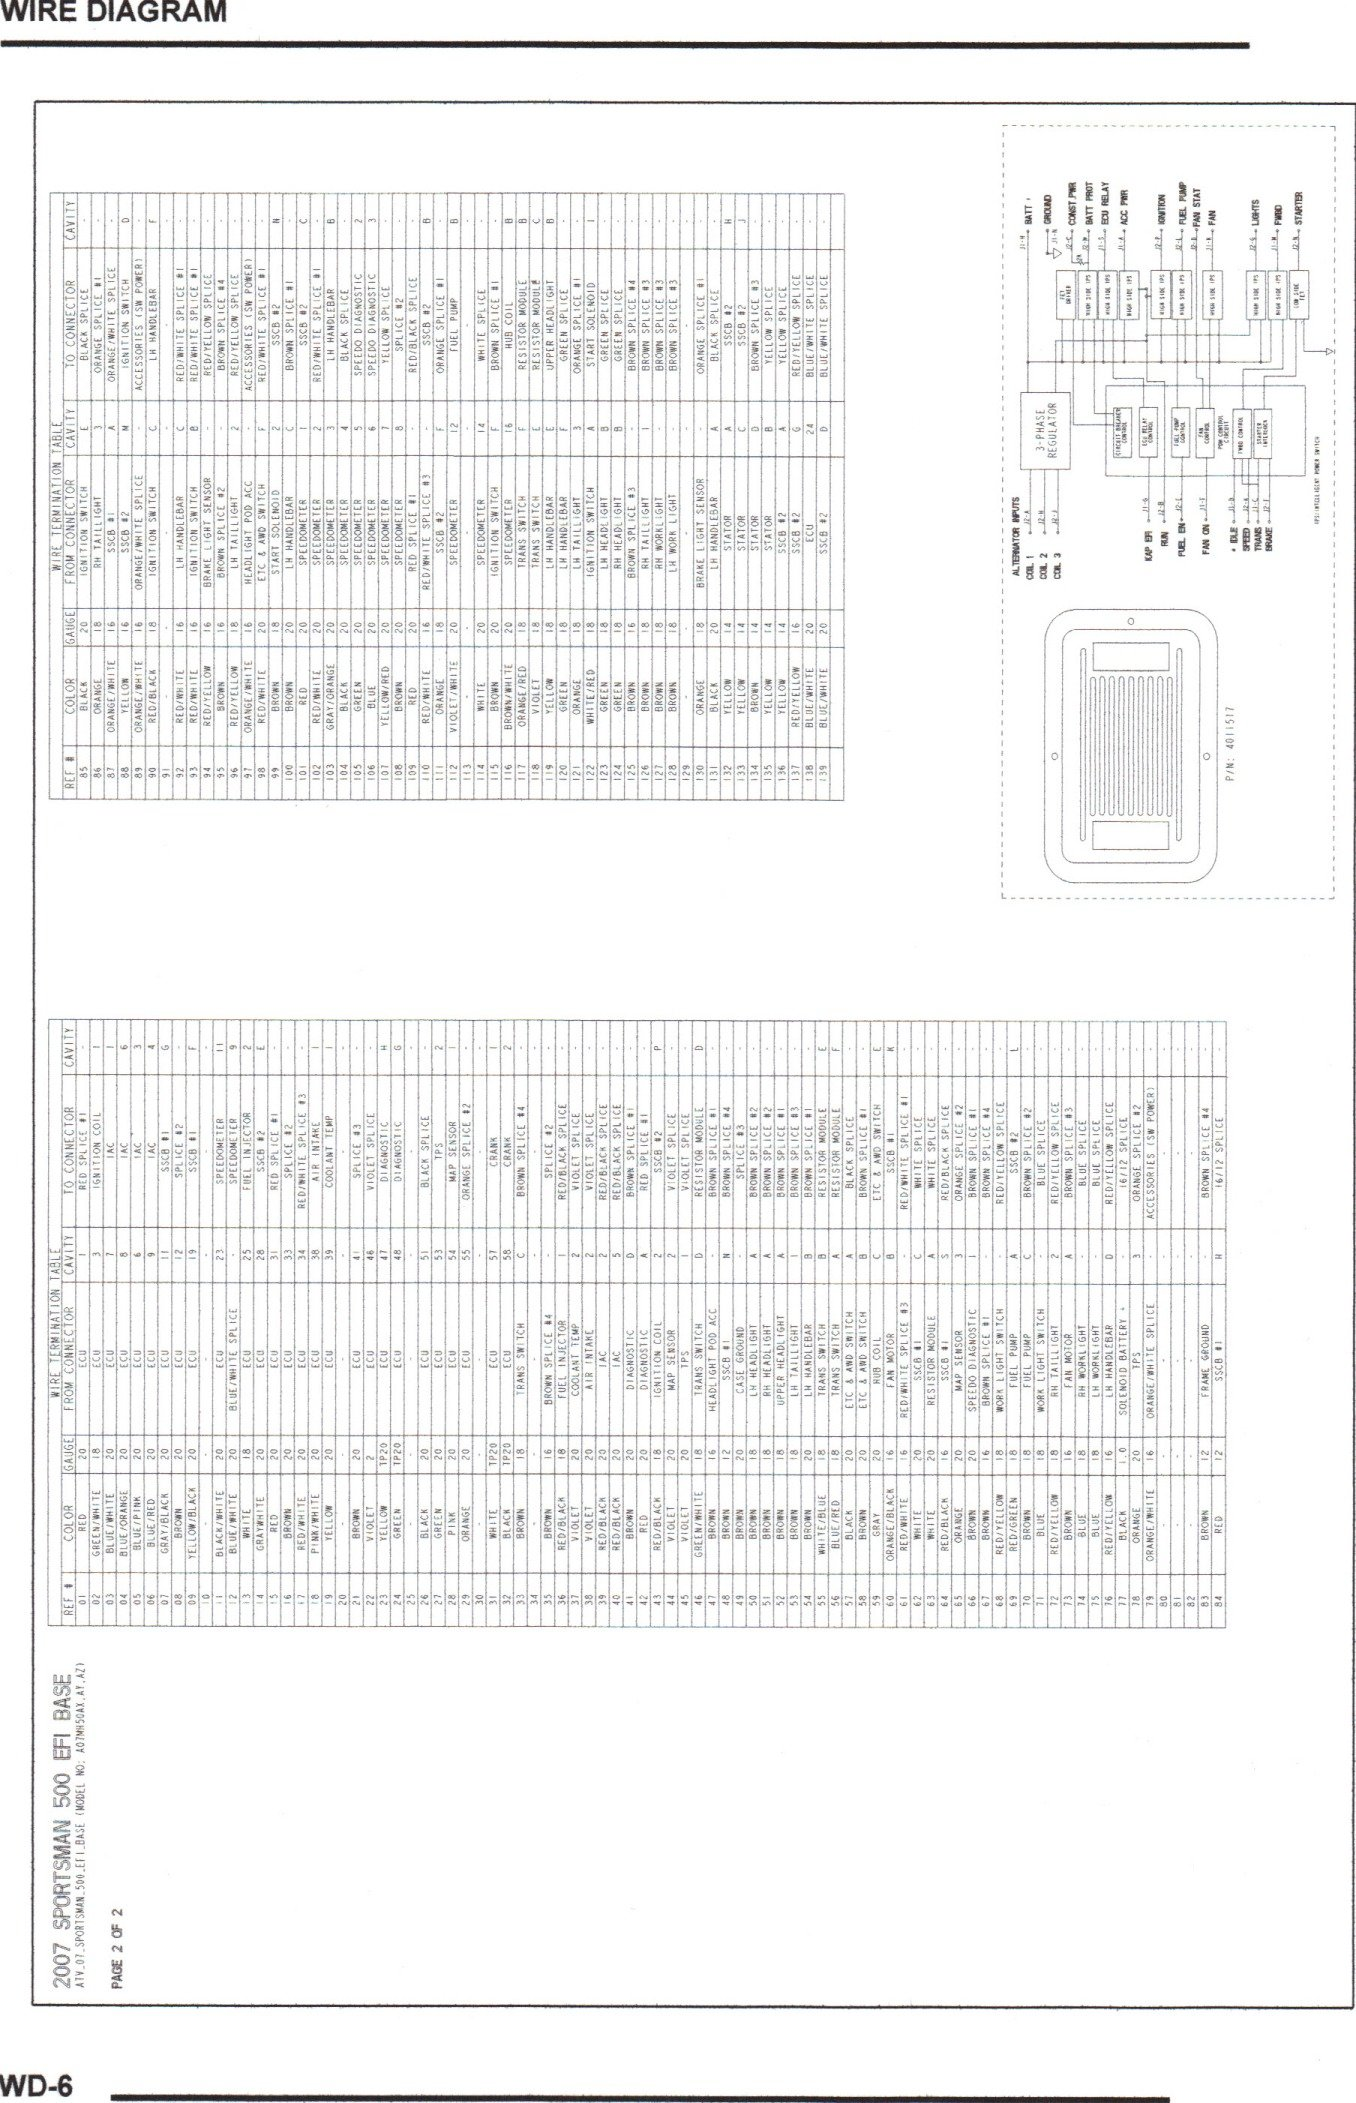 2010 06 22_210148_500_efi_wiring_diagram2 my 2007 sportsman 500 doesn't start no click or dash lights Polaris Sportsman 400 Wiring Diagram at edmiracle.co